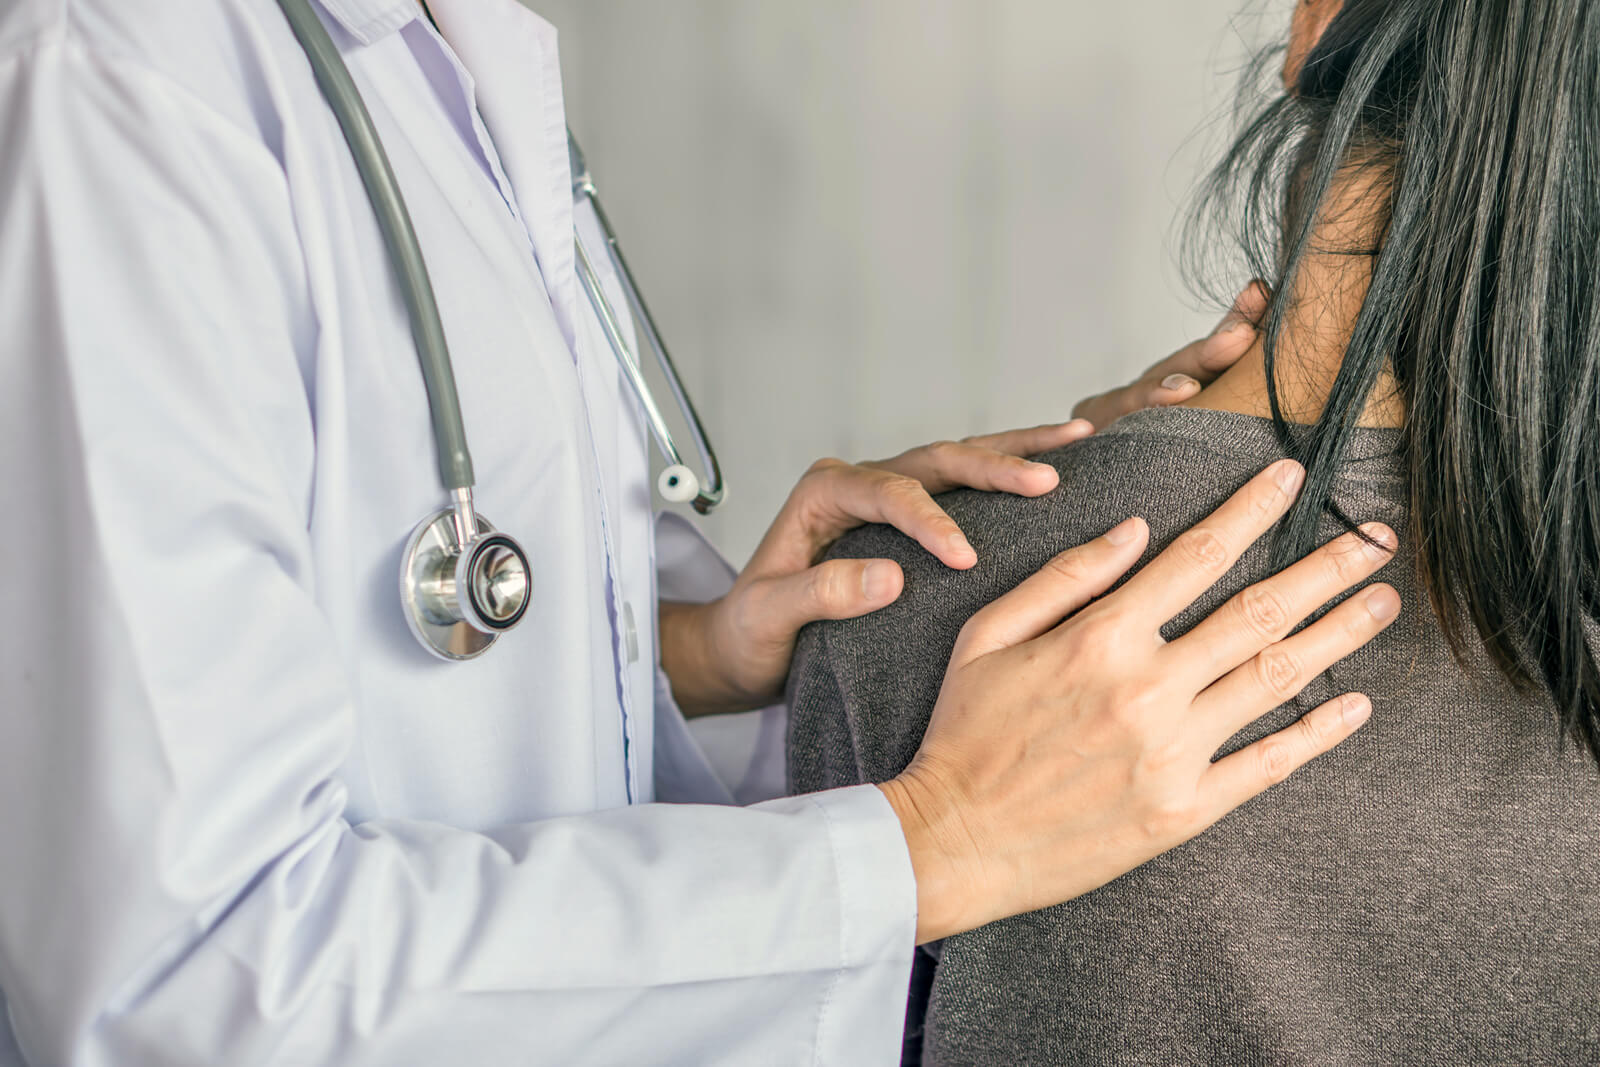 Doctor speaks with a patient about shoulder replacement surgery